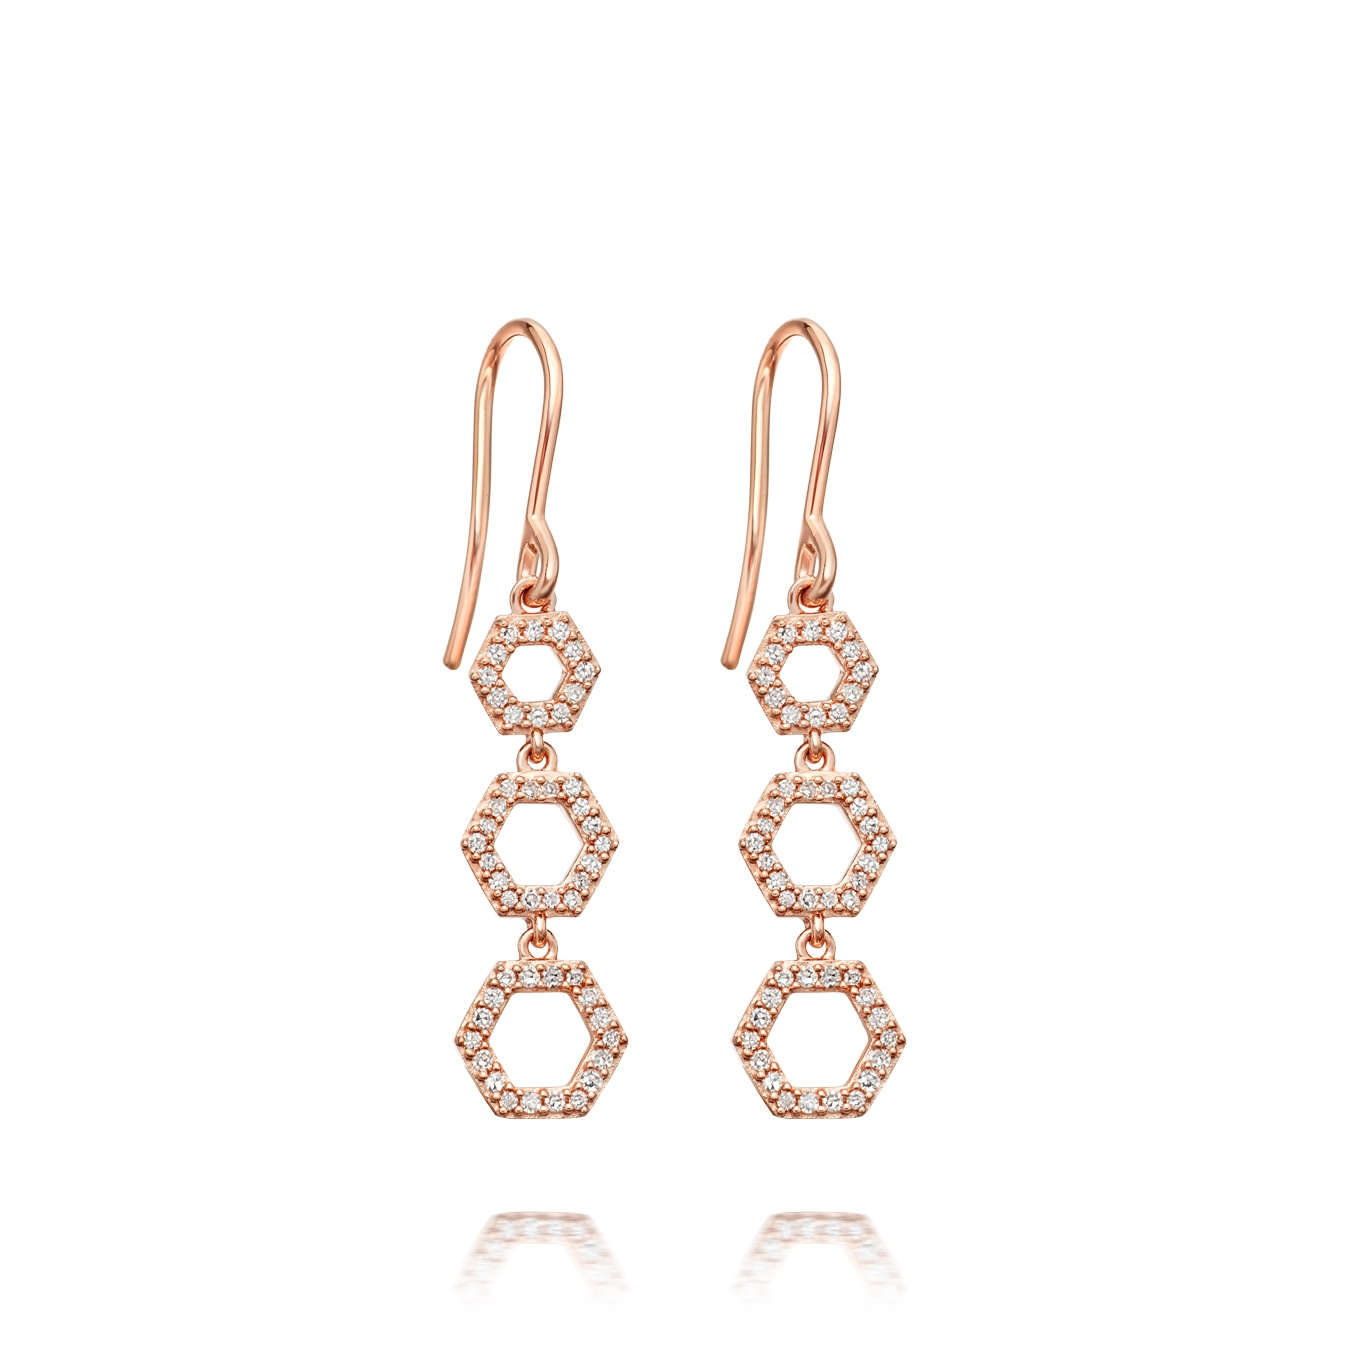 Triple Honeycomb Drop Earrings